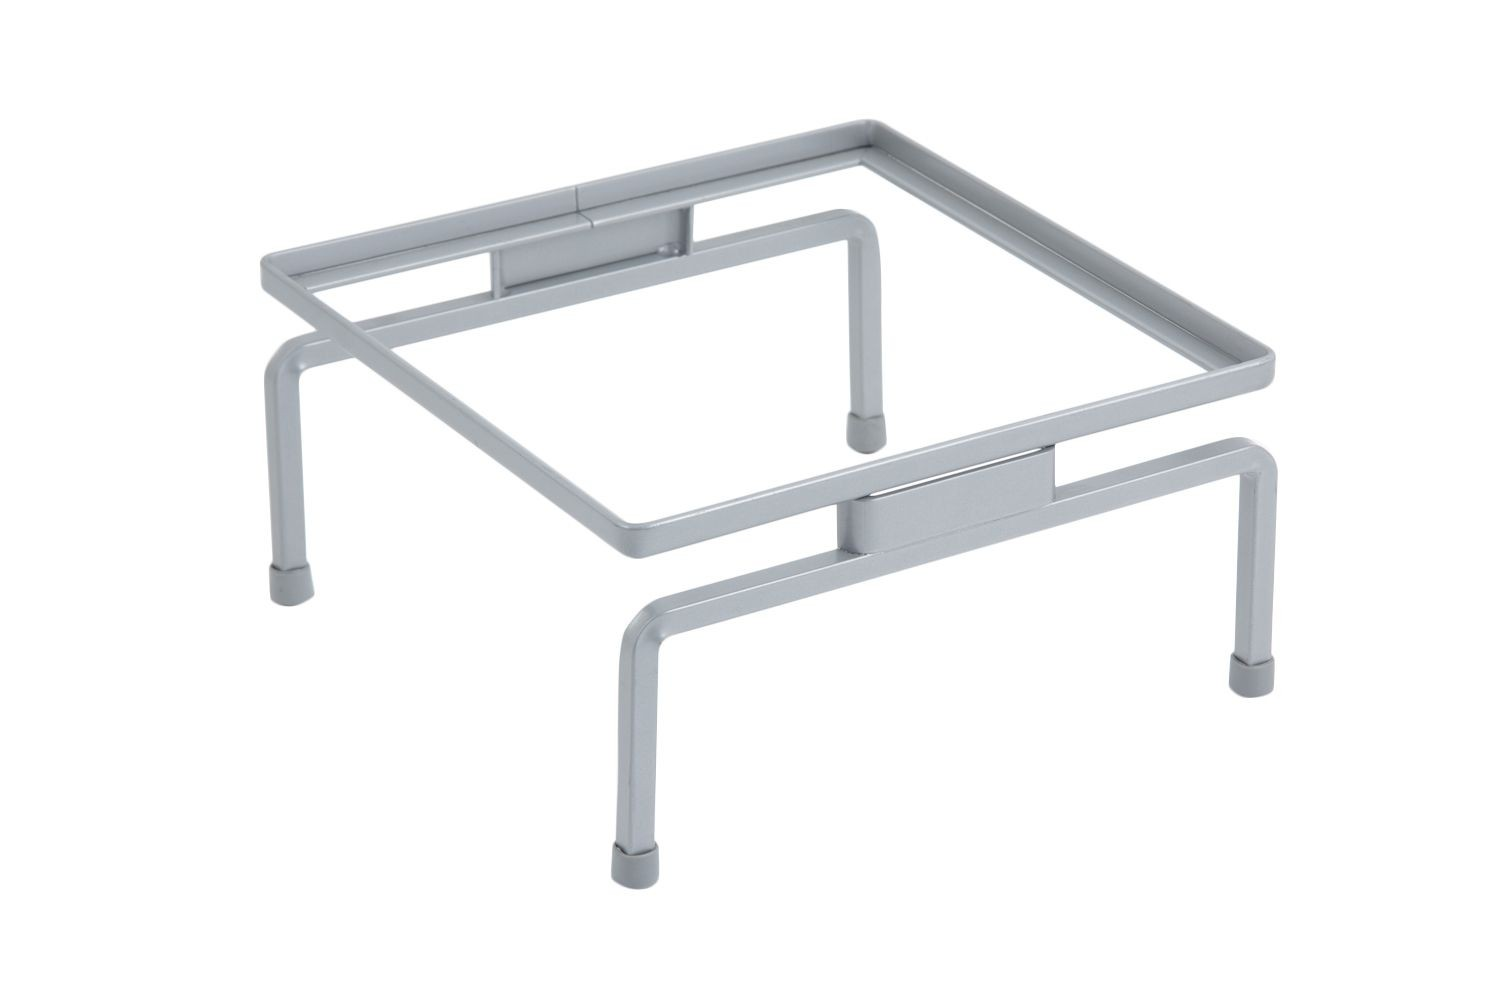 """Bon Chef 7012SS Stainless Steel Stand, 10 1/4"""" x 10 1/4"""" x 5 1/8"""", Set of 6"""